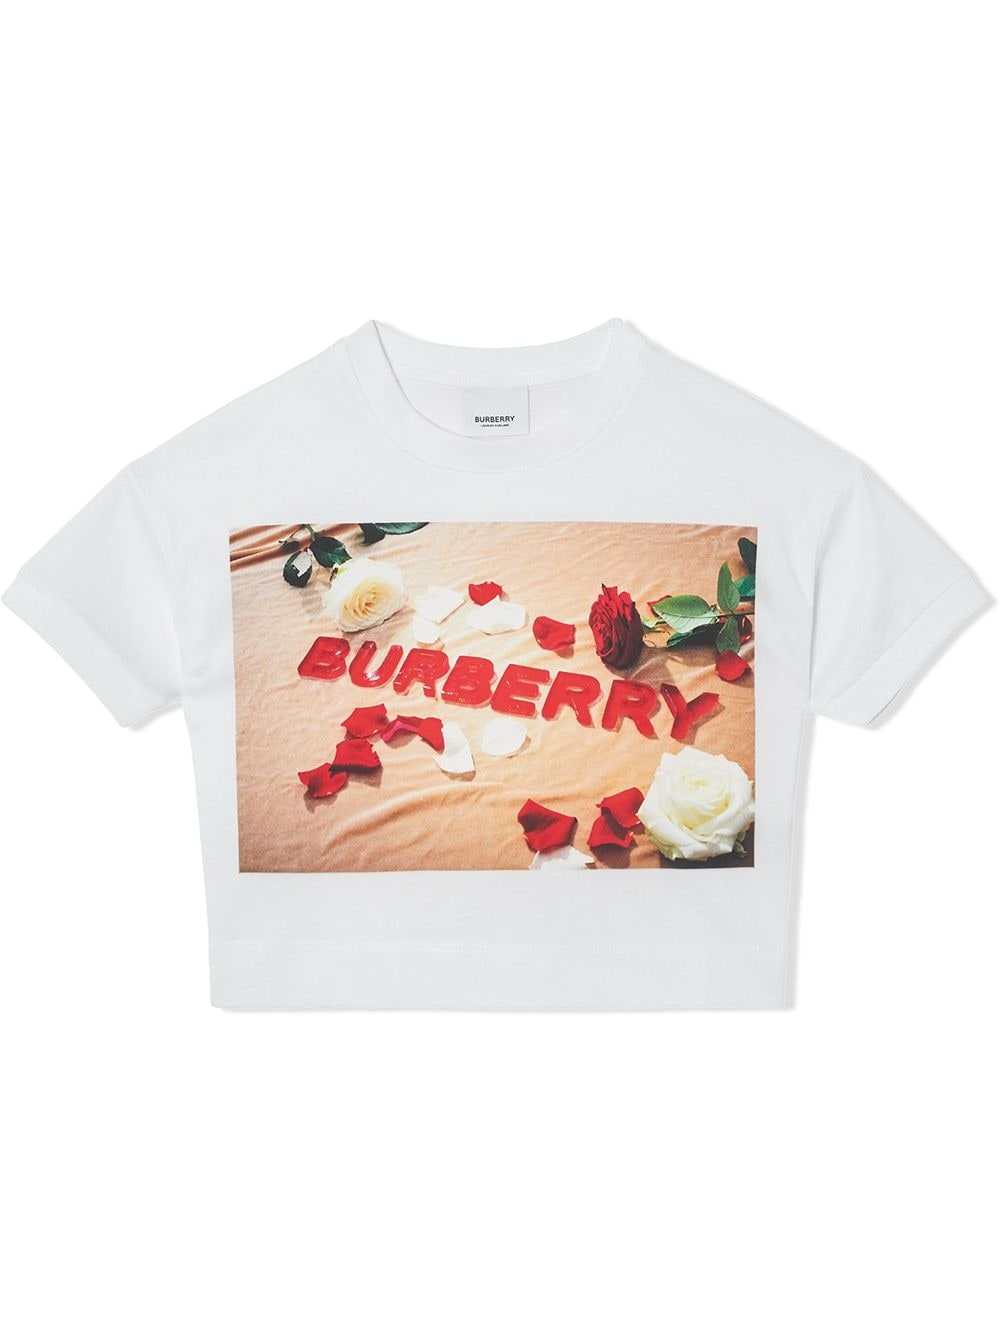 BURBERRY KIDS |  | 8036910A1464#